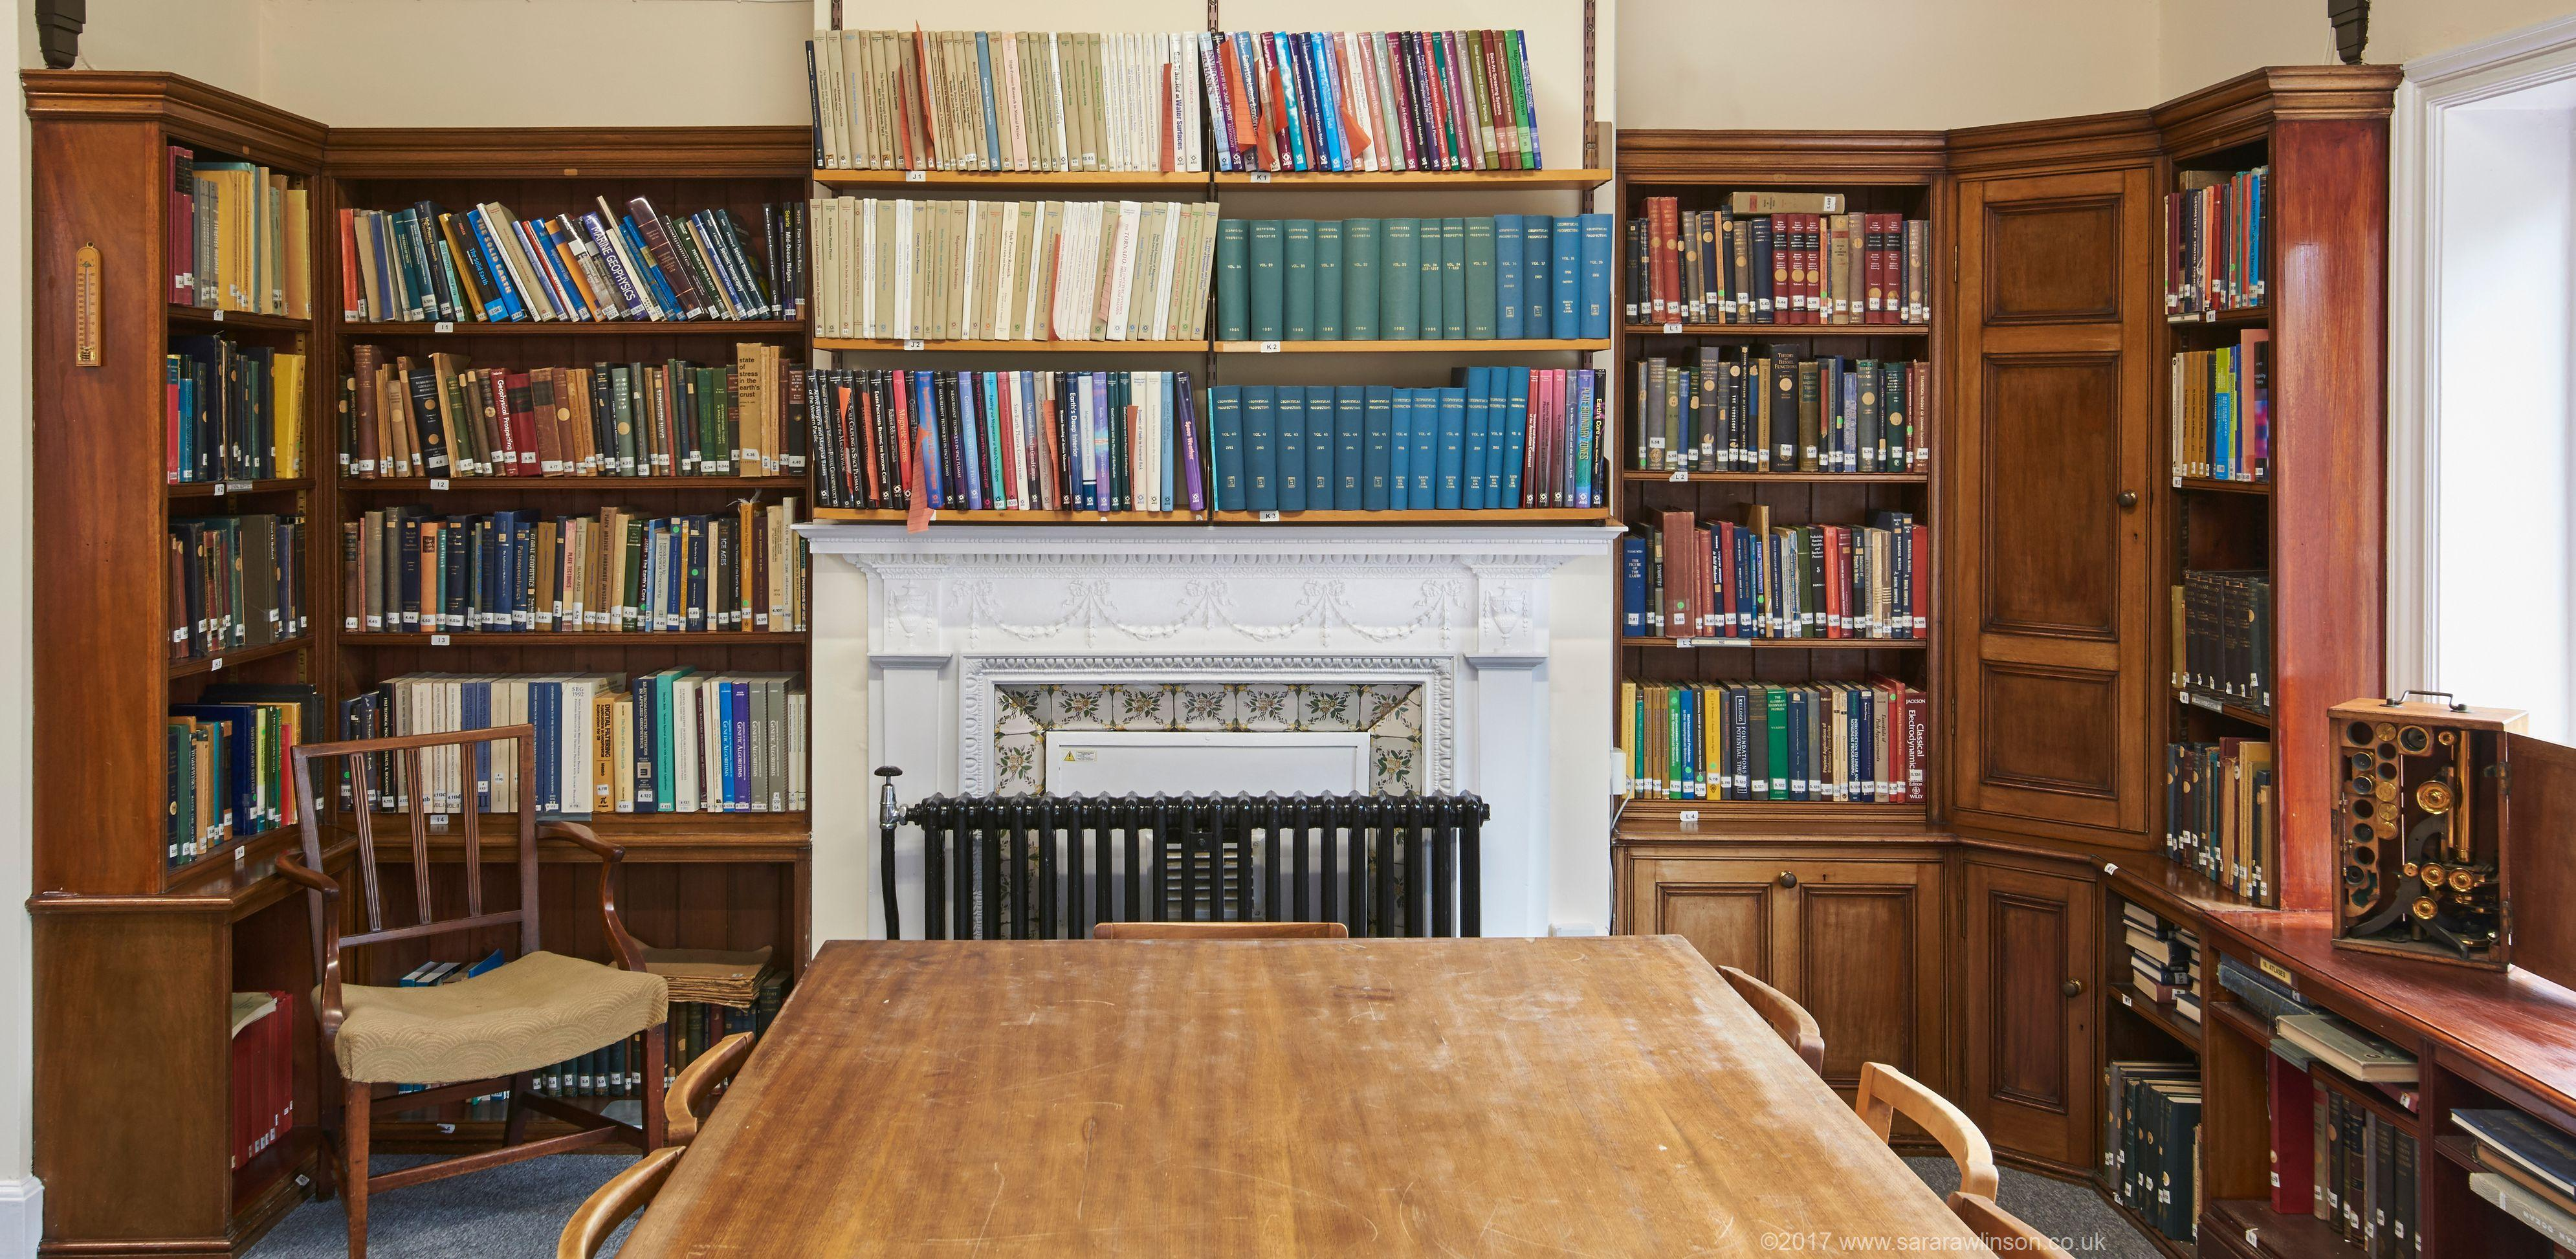 The library at the Bullard labs showing a fireplace, a table and books shelves; image credit Rawlinson copyright